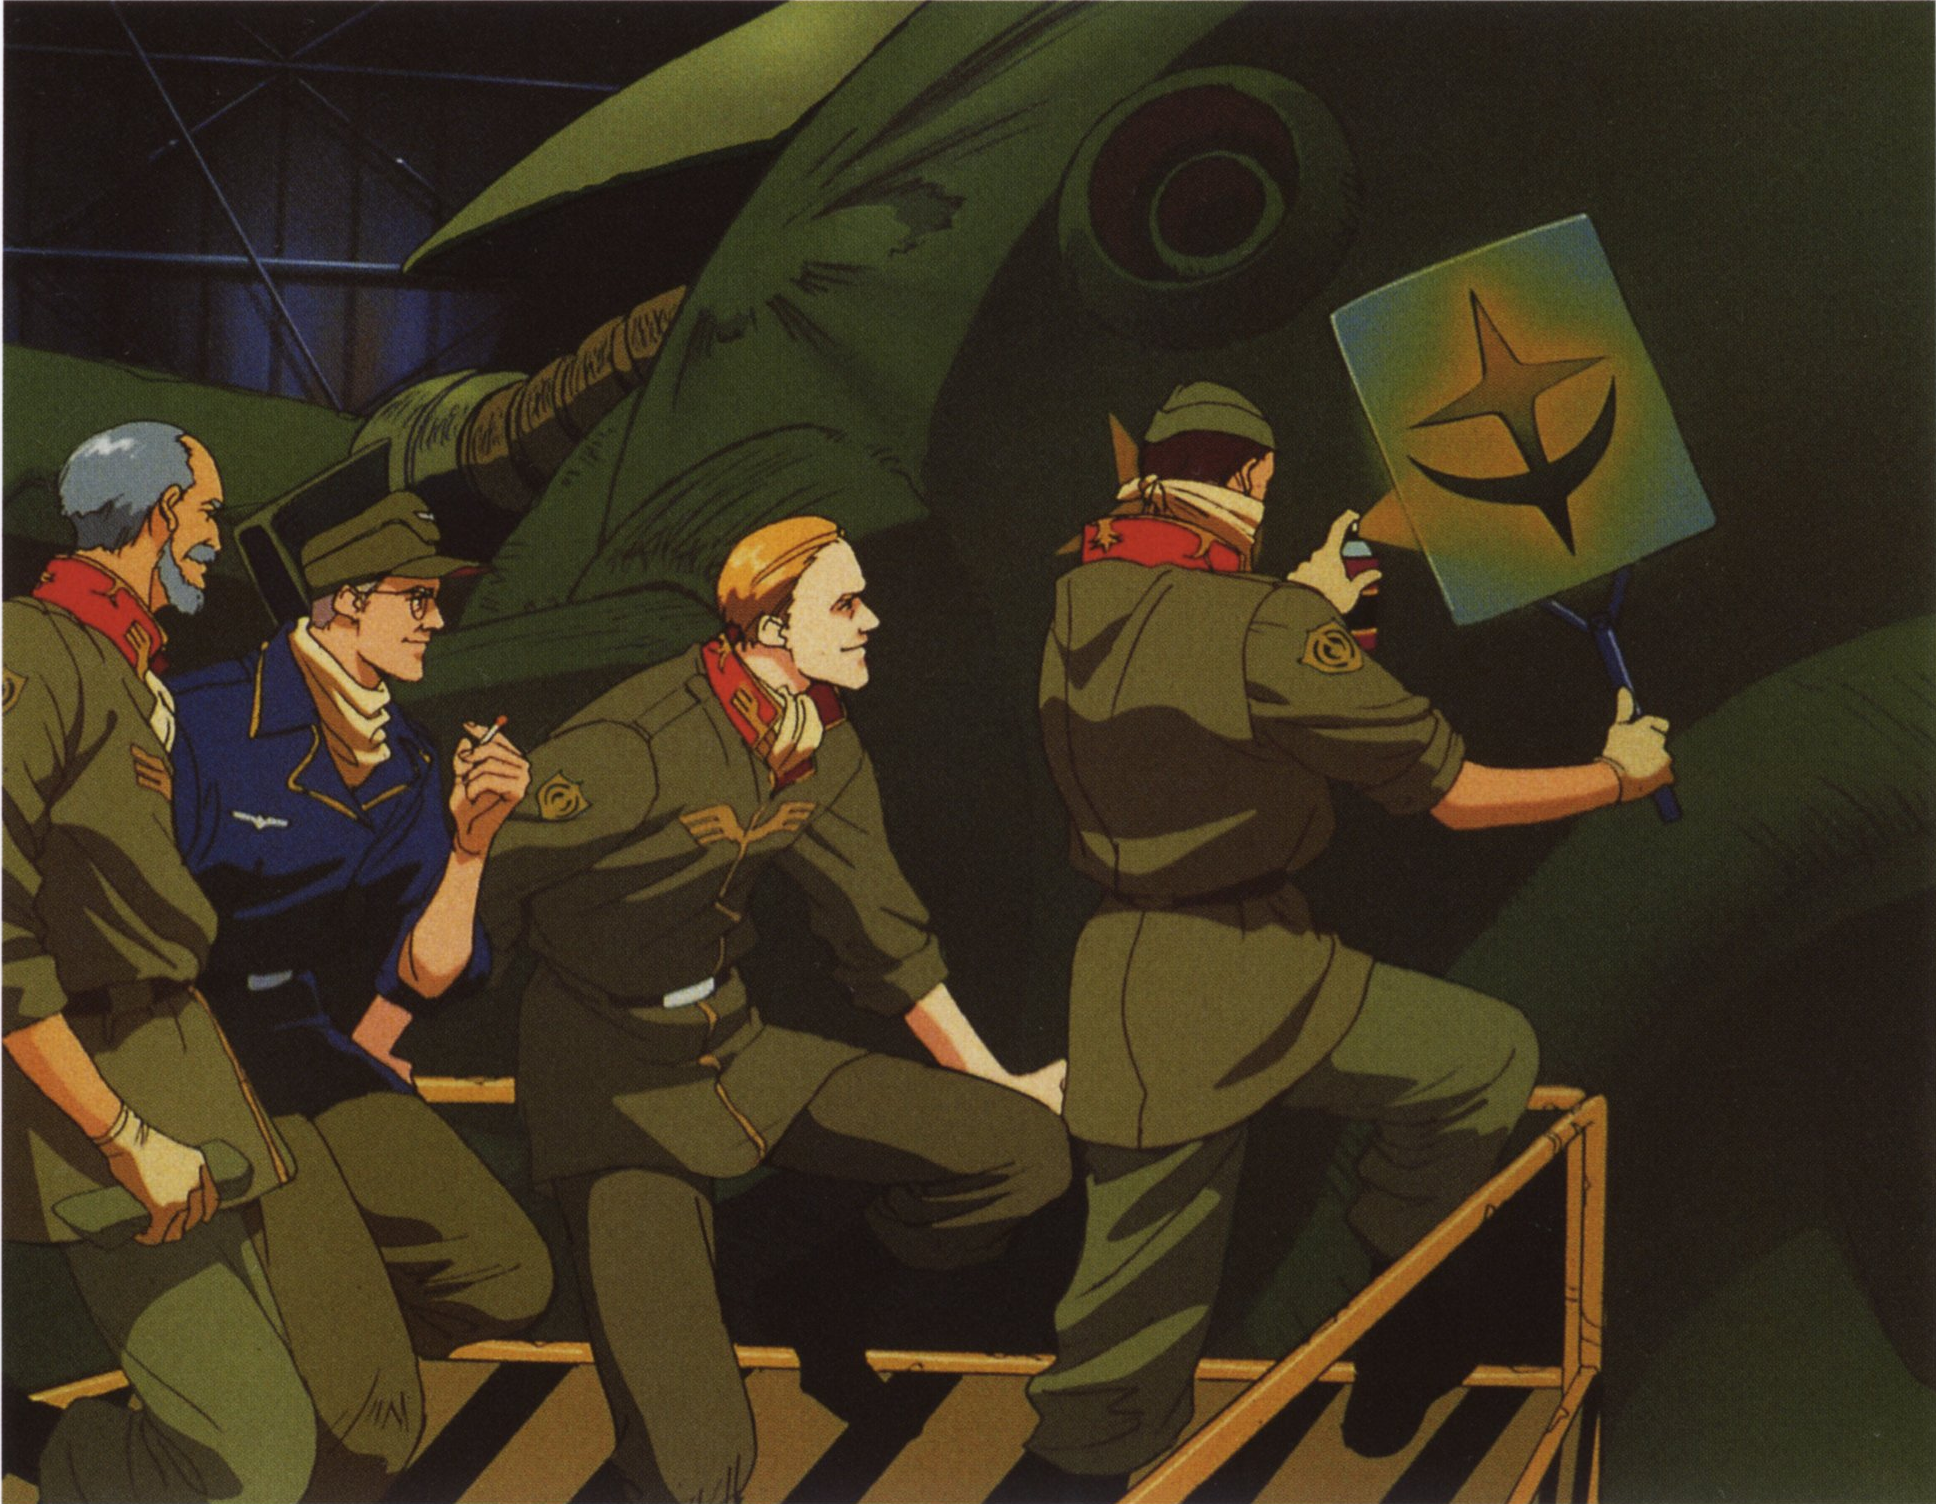 The Despair of Zeon At The Bottom of The Gravity Well–Mobile Suit